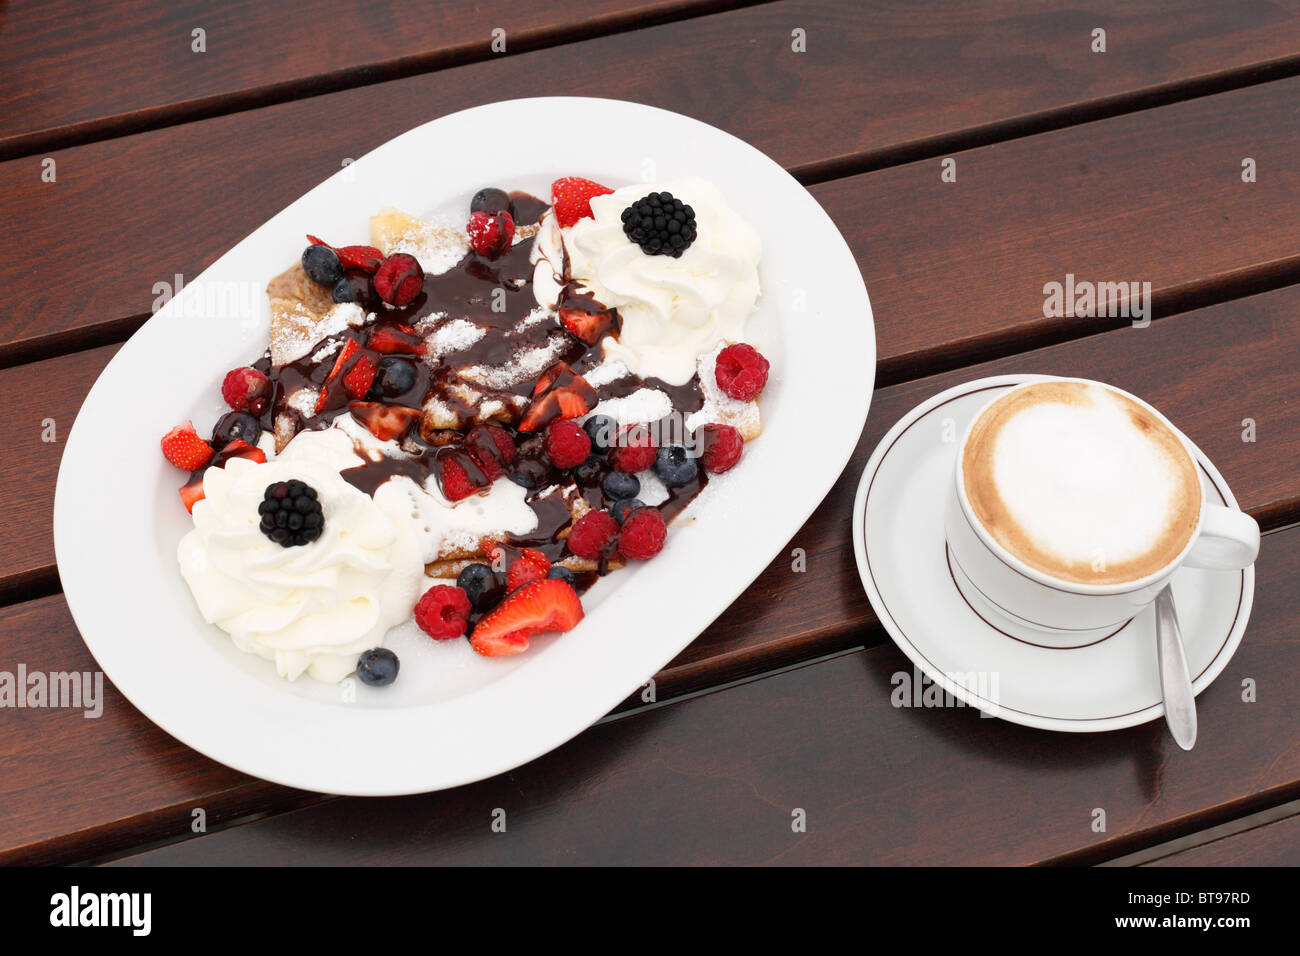 Pancakes with berries and cream, cappuccino, Burgenland, Austria, Europe - Stock Image